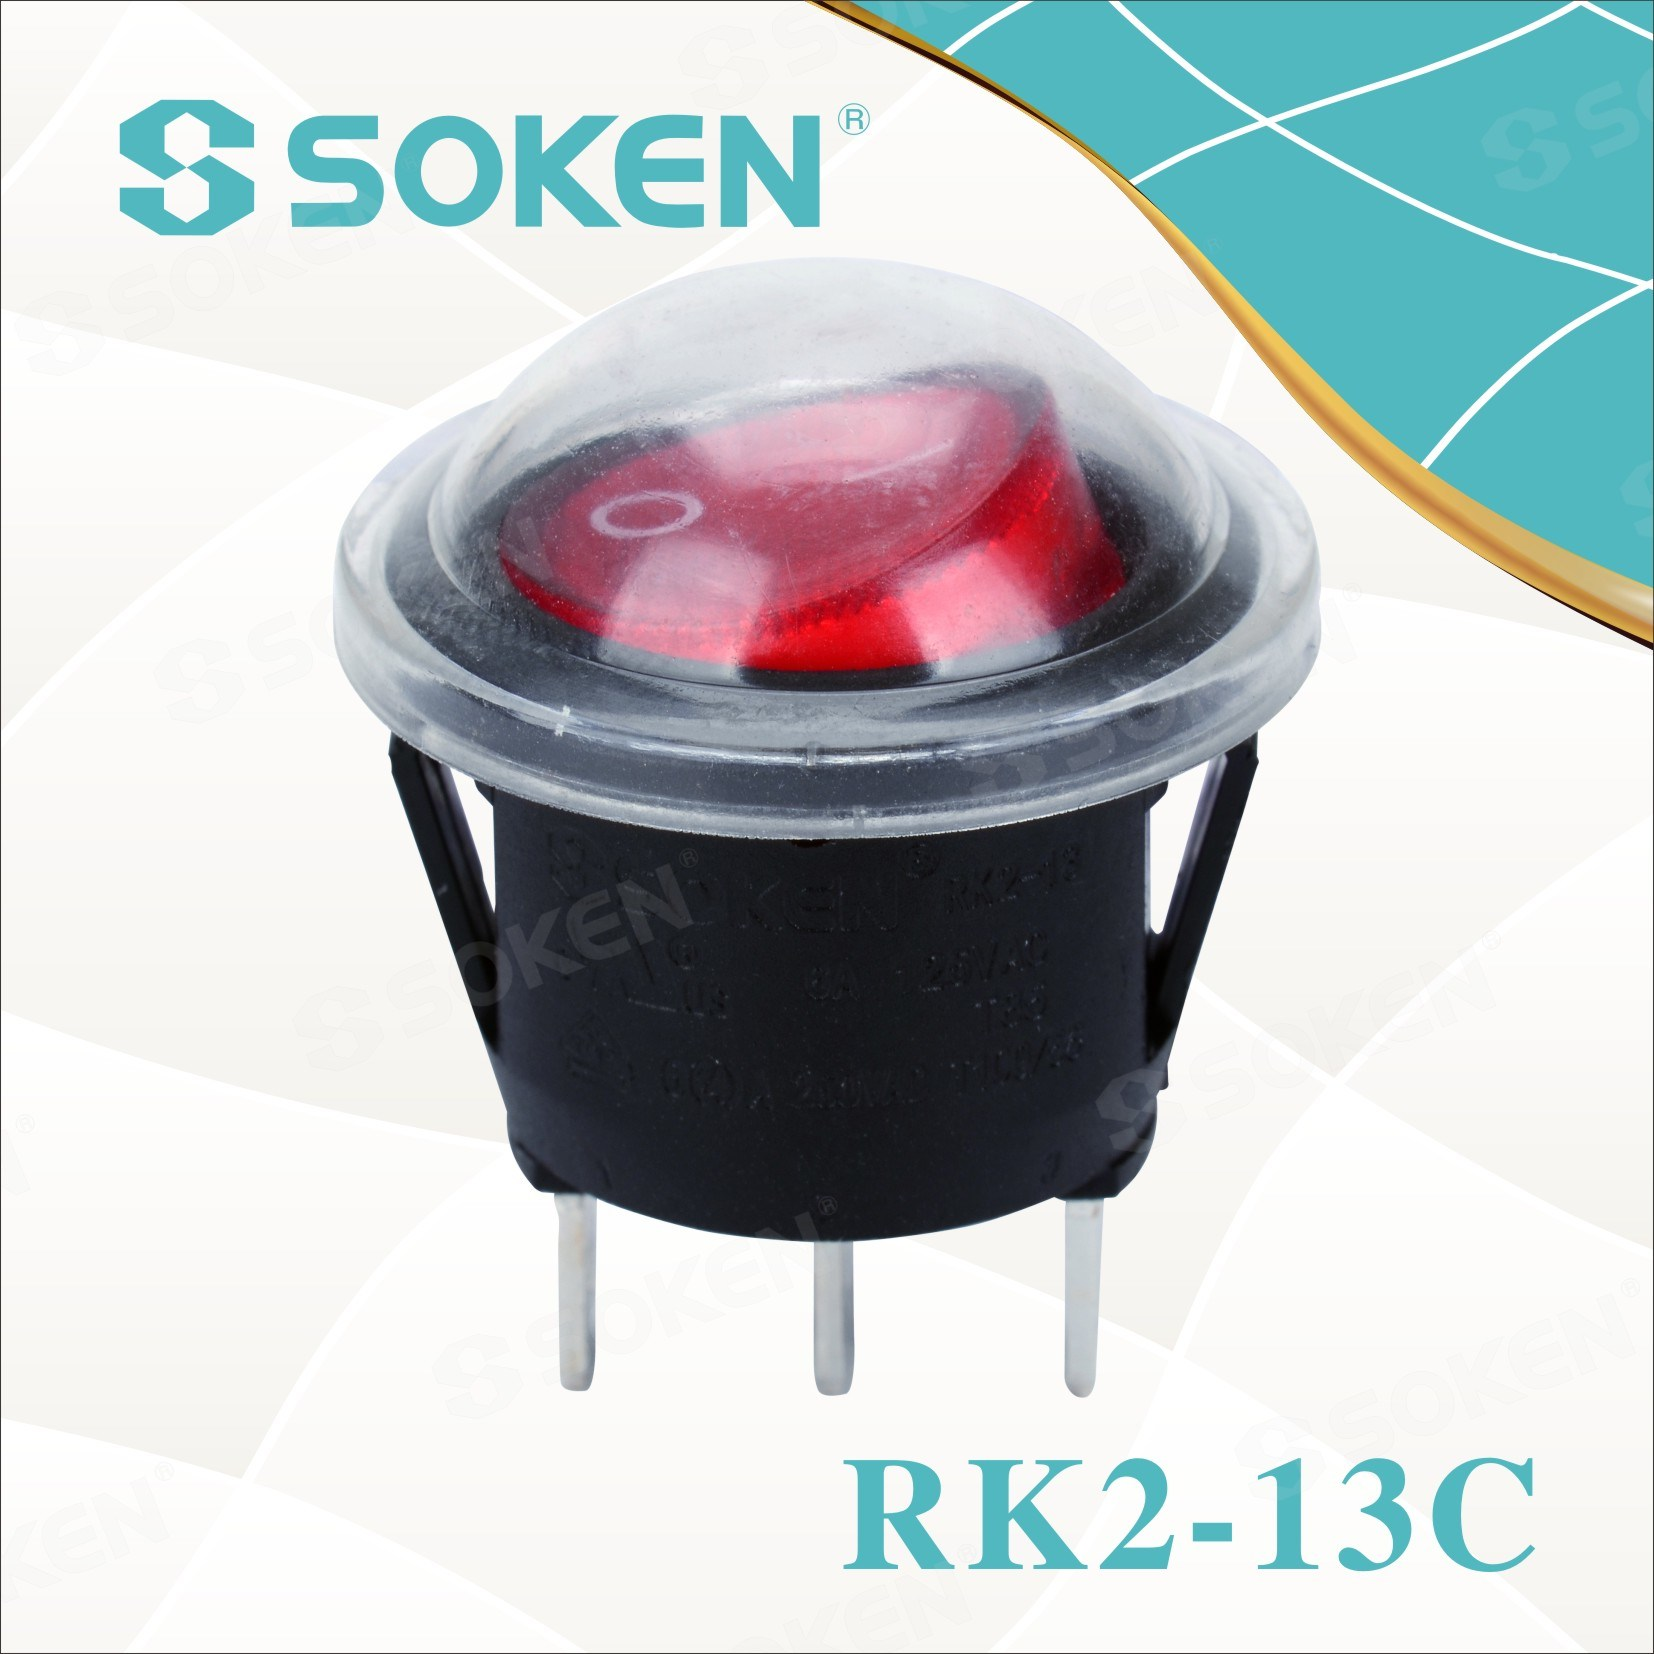 Soken Rk2-13c Round Waterproof Rocker Switch